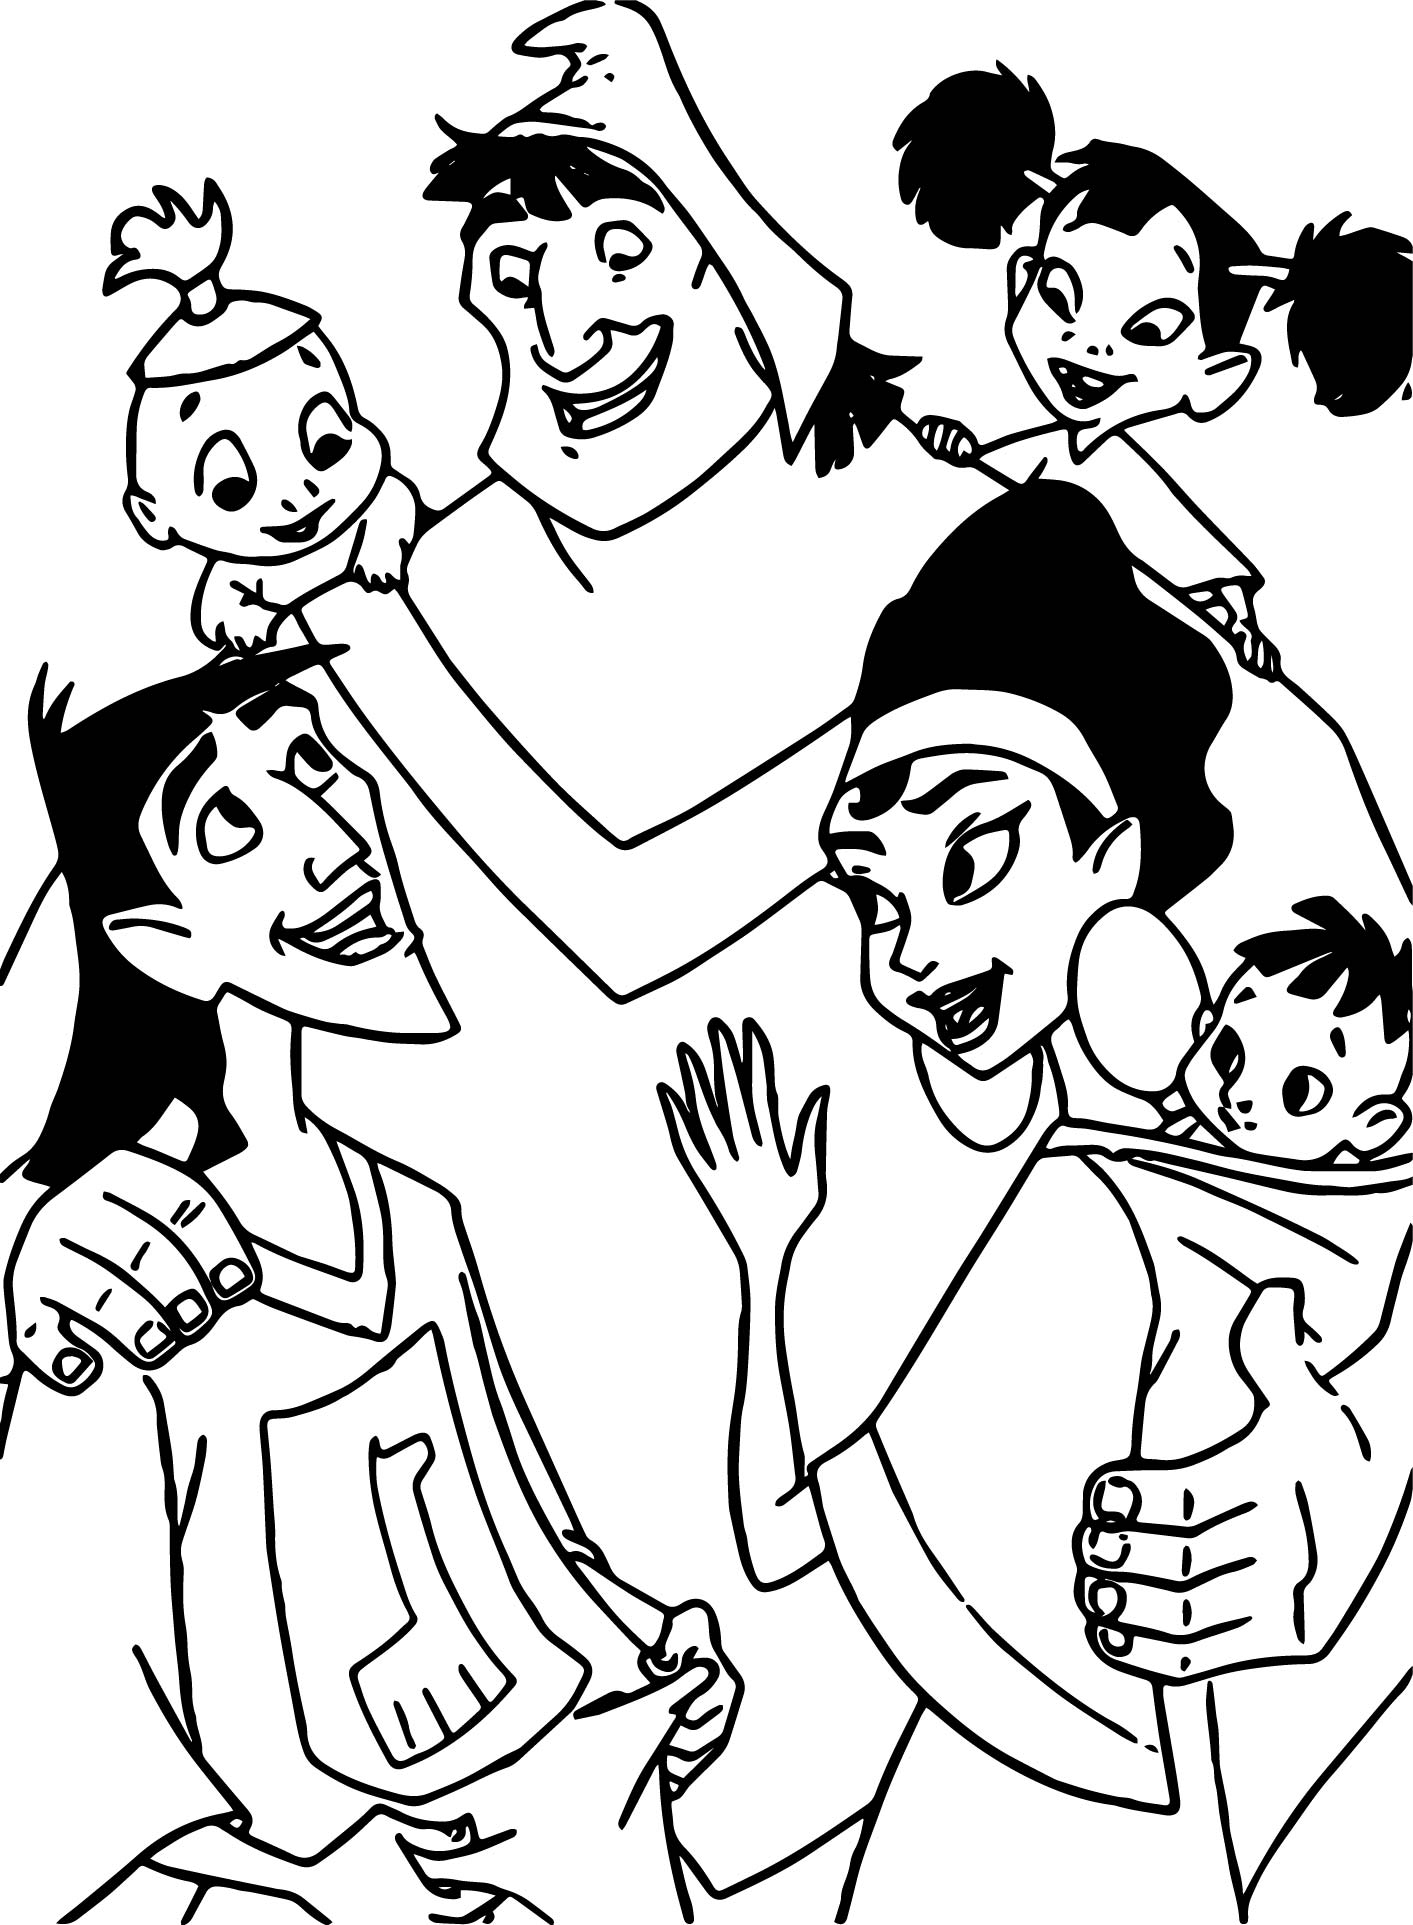 the emperor new groove disney family coloring pages wecoloringpage